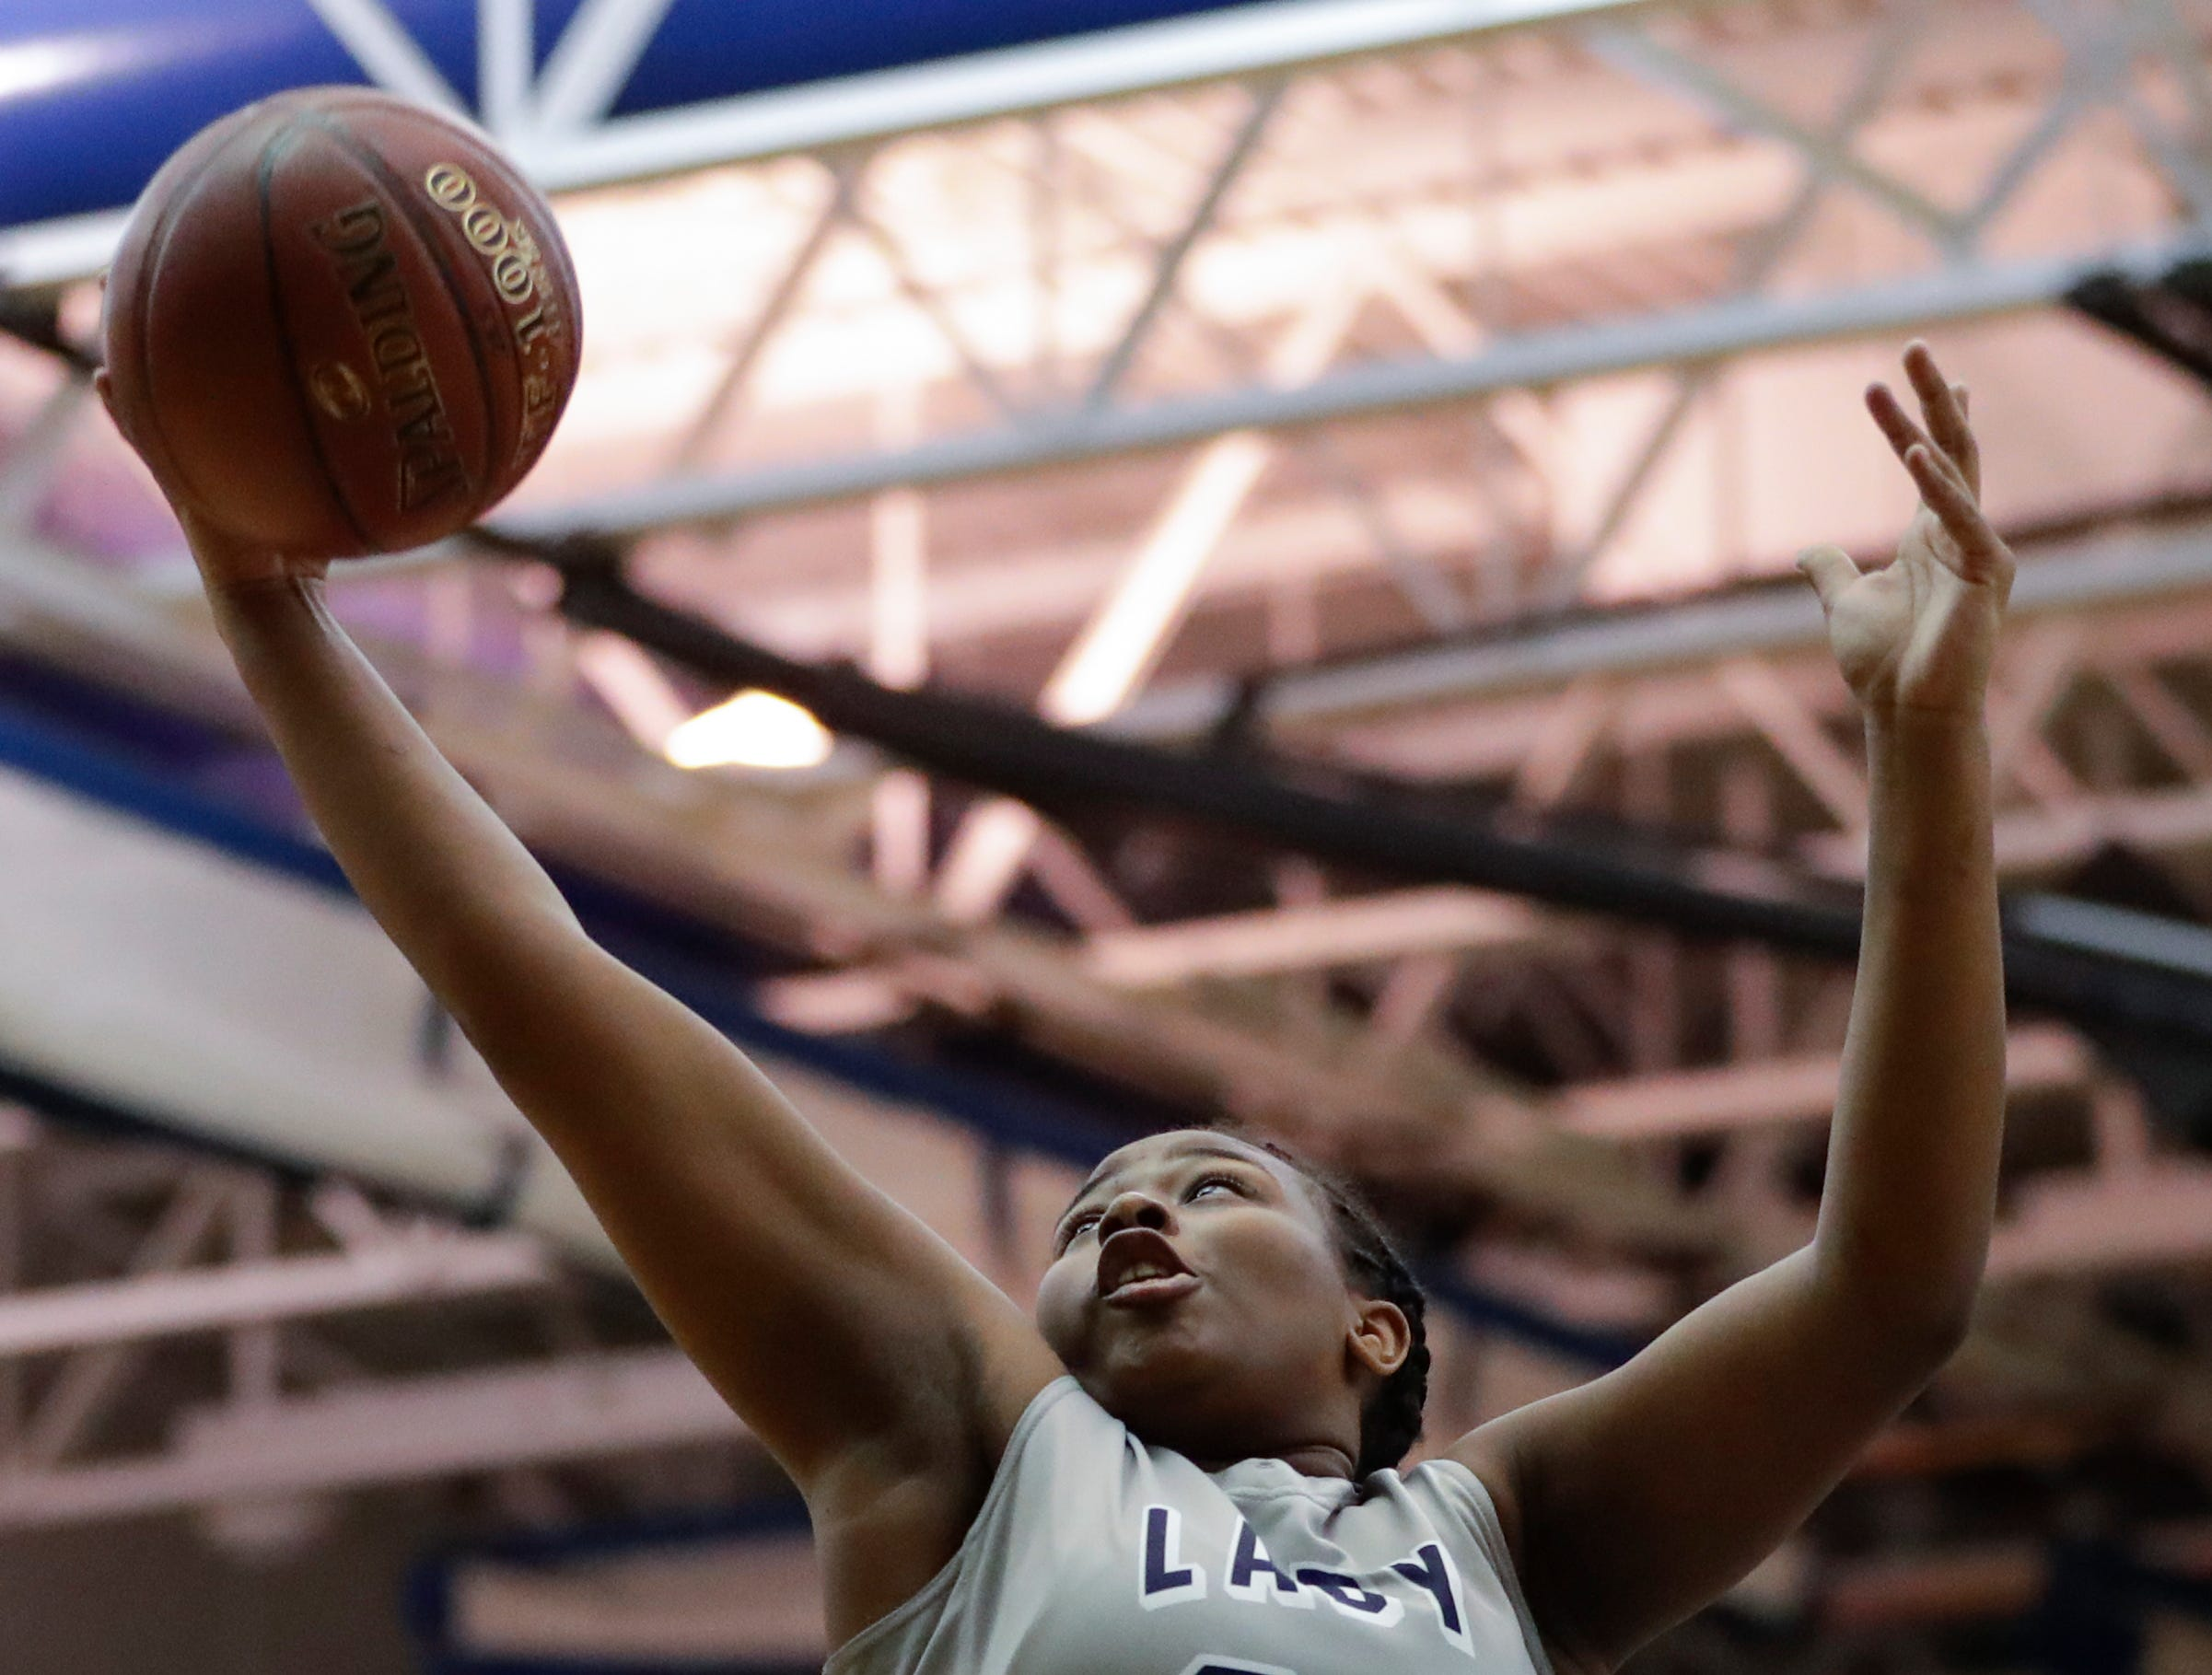 Milwaukee Academy of Science's Nakiyah Hurst rebounds against Howards Grove during a WIAA Division 4 sectional championship game at Sheboygan North High School Saturday, March 2, 2019, in Sheboygan, Wis. Joshua Clark/USA TODAY NETWORK-Wisconsin